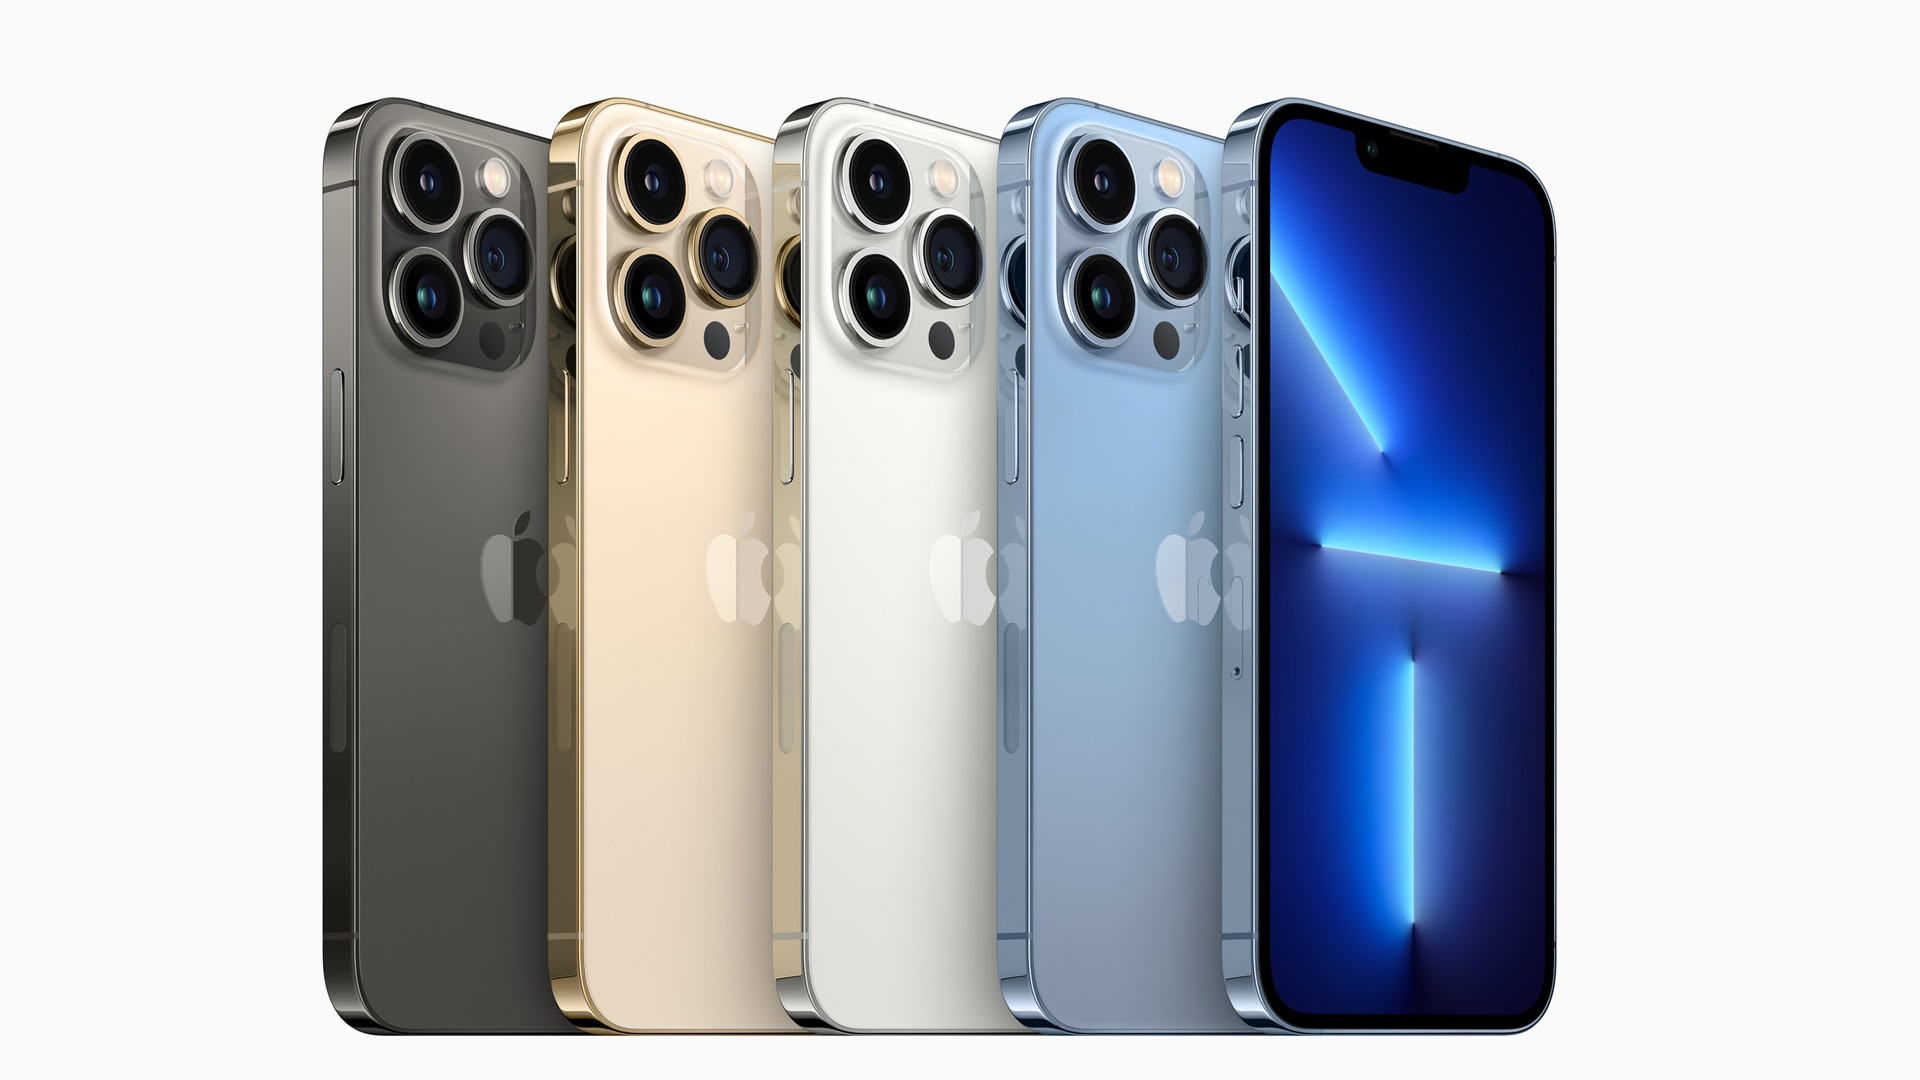 Apple launches new iPhone 13 series